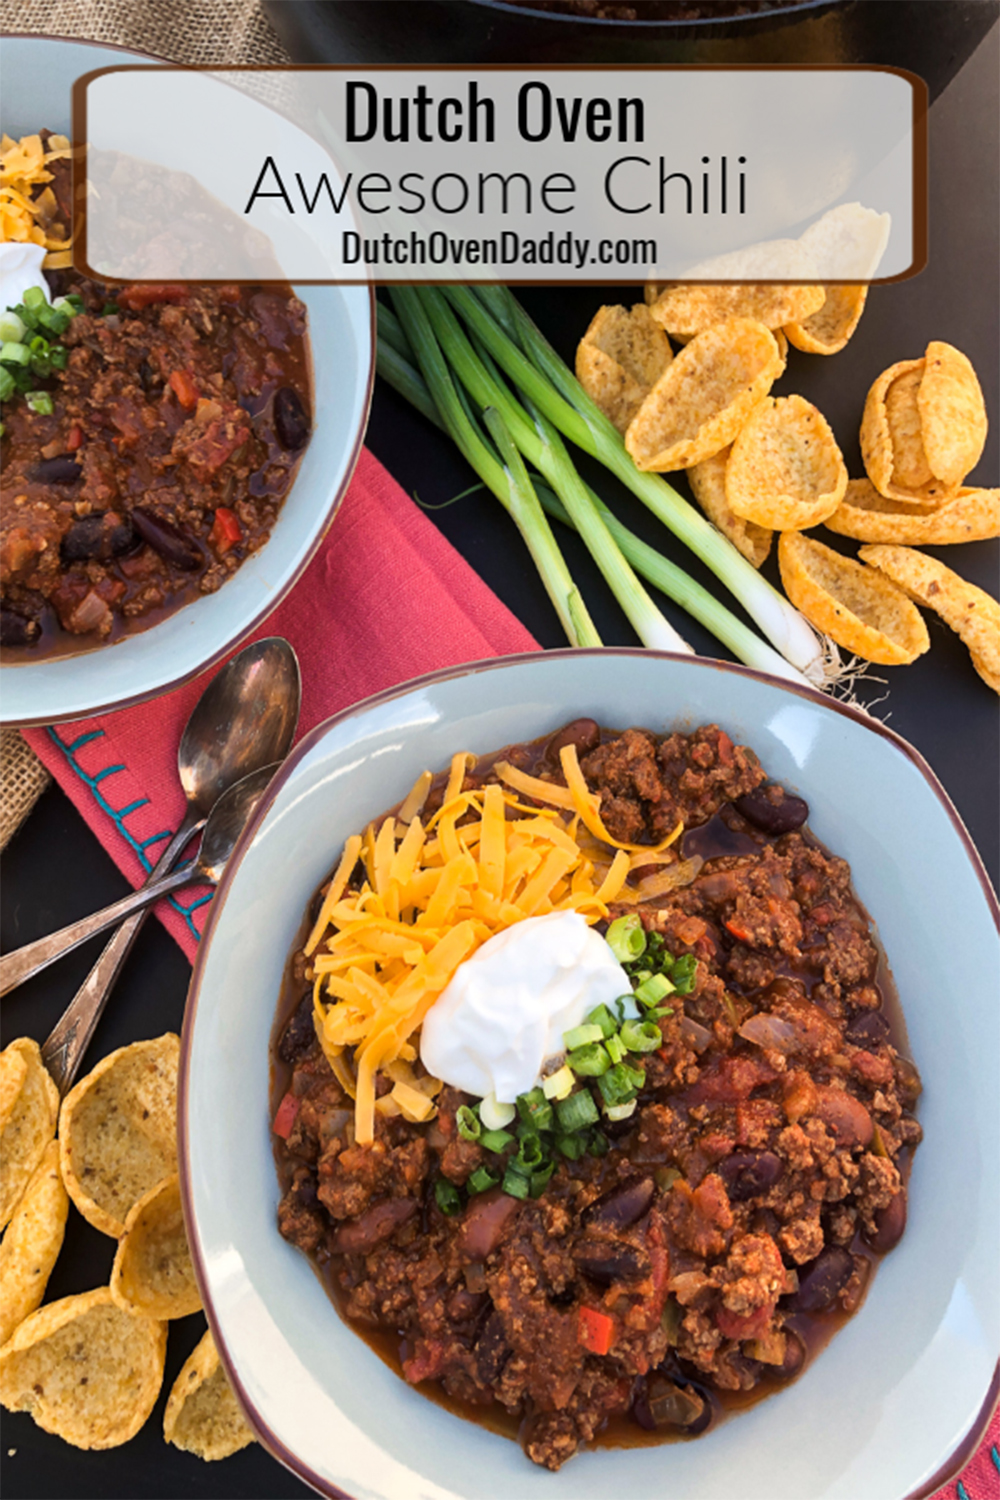 Awesome Chili served up in bowls topped with sour cream, cheddar cheese, and green onions, Frito chips sprinkled around.